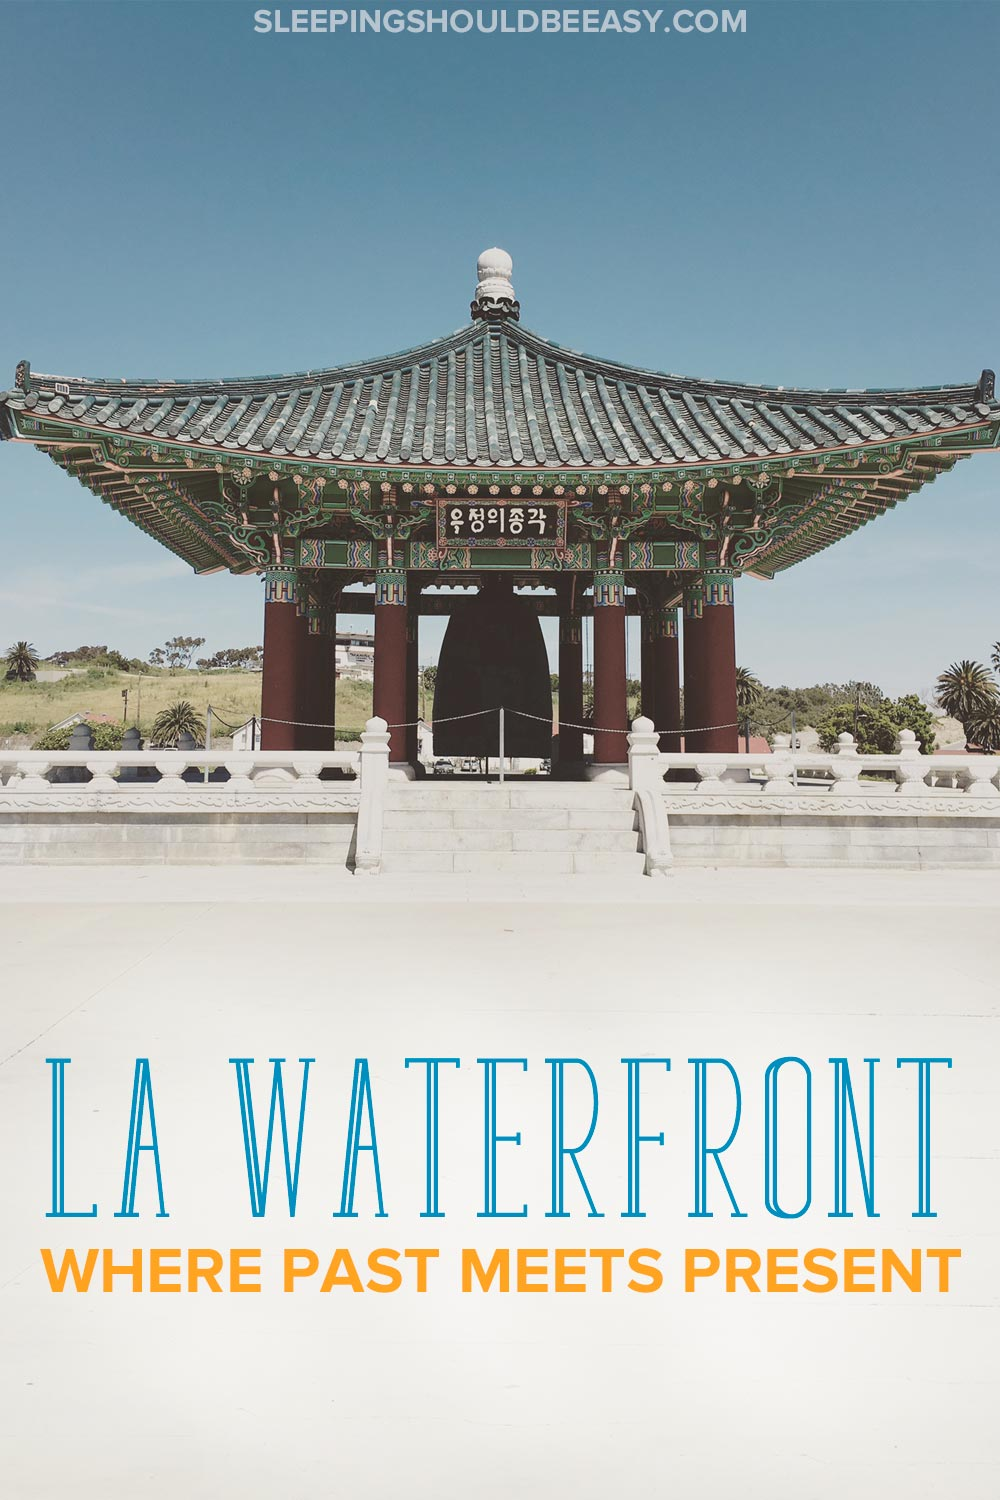 Come visit the LA Waterfront to experience the history of America's largest trade gateway! The Port of Los Angeles is perfect for locals and tourists alike.